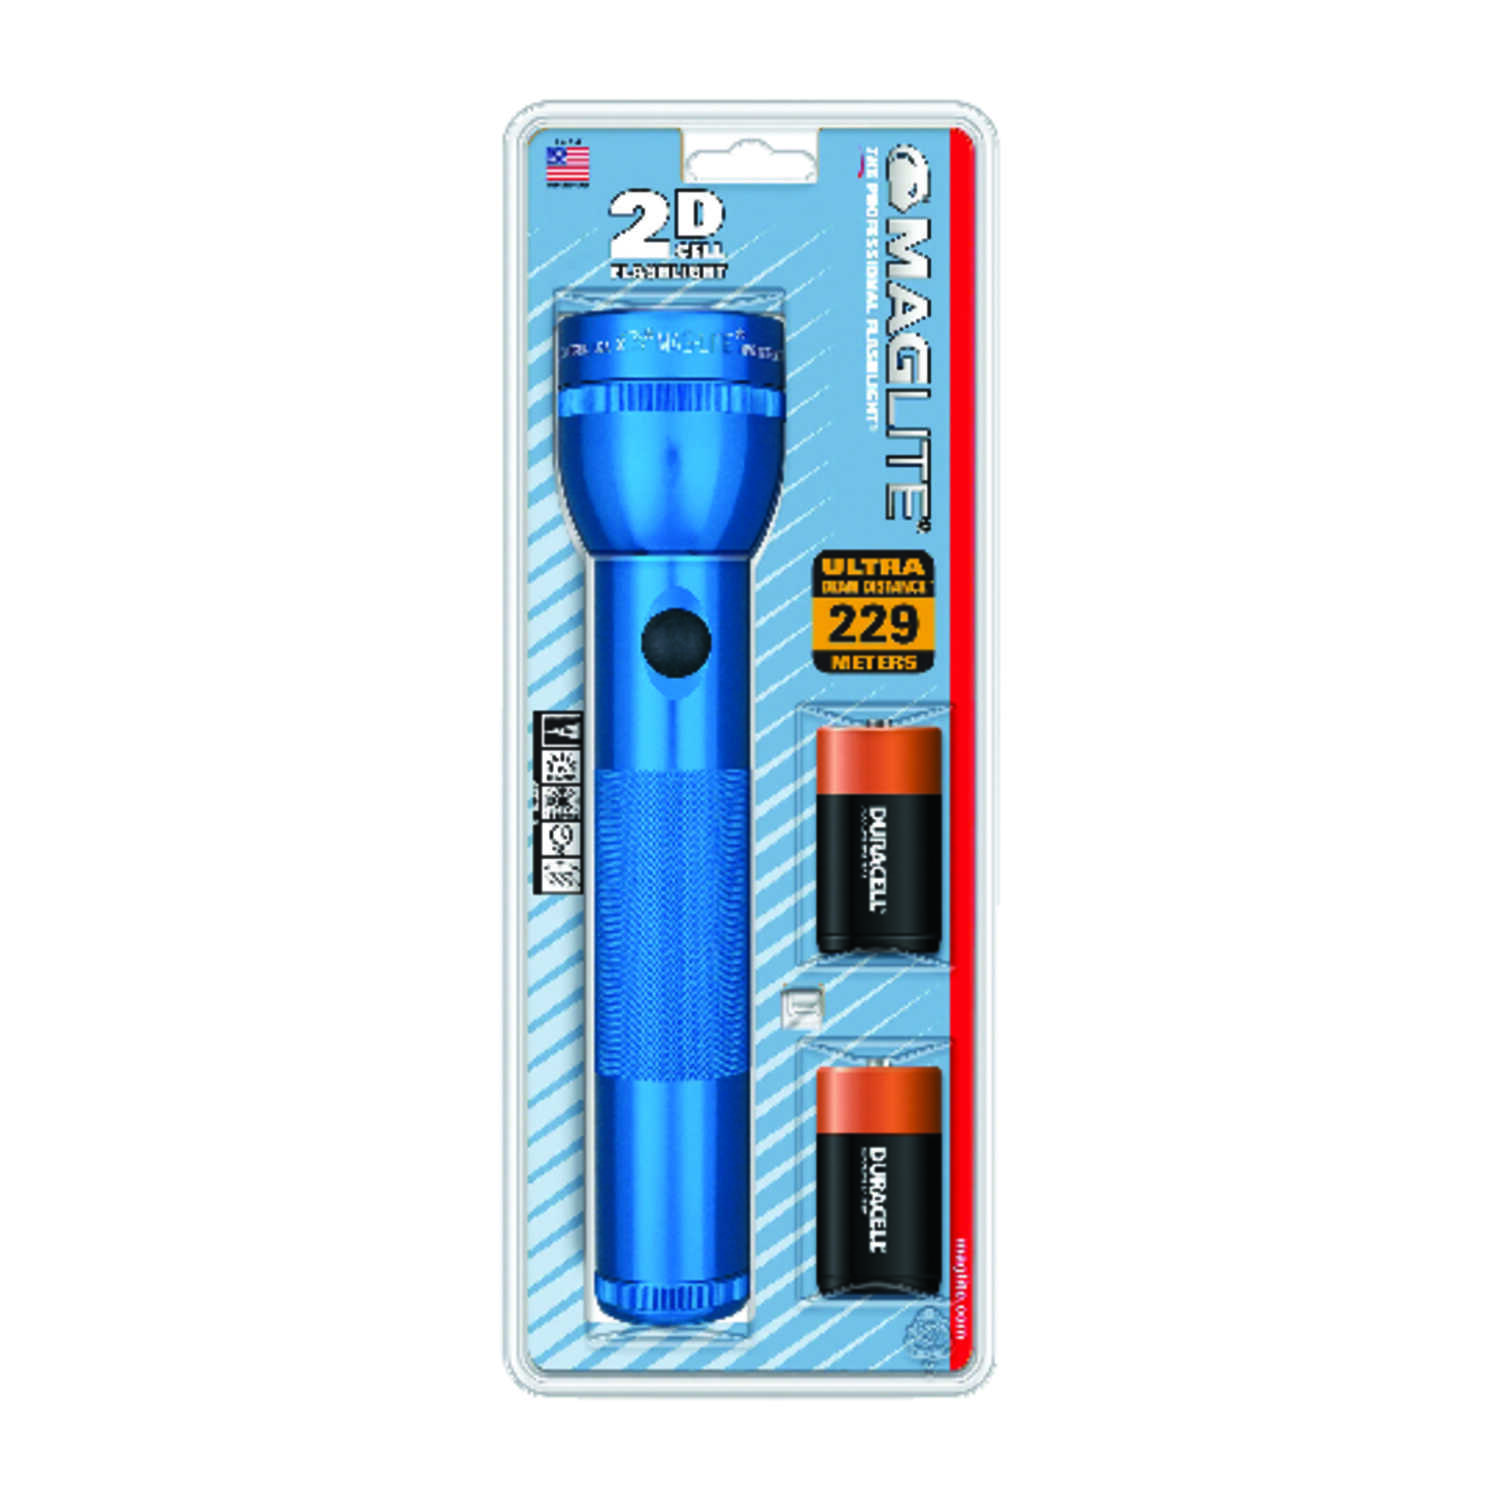 Maglite  19 lumens Blue  Xenon  Flashlight  D